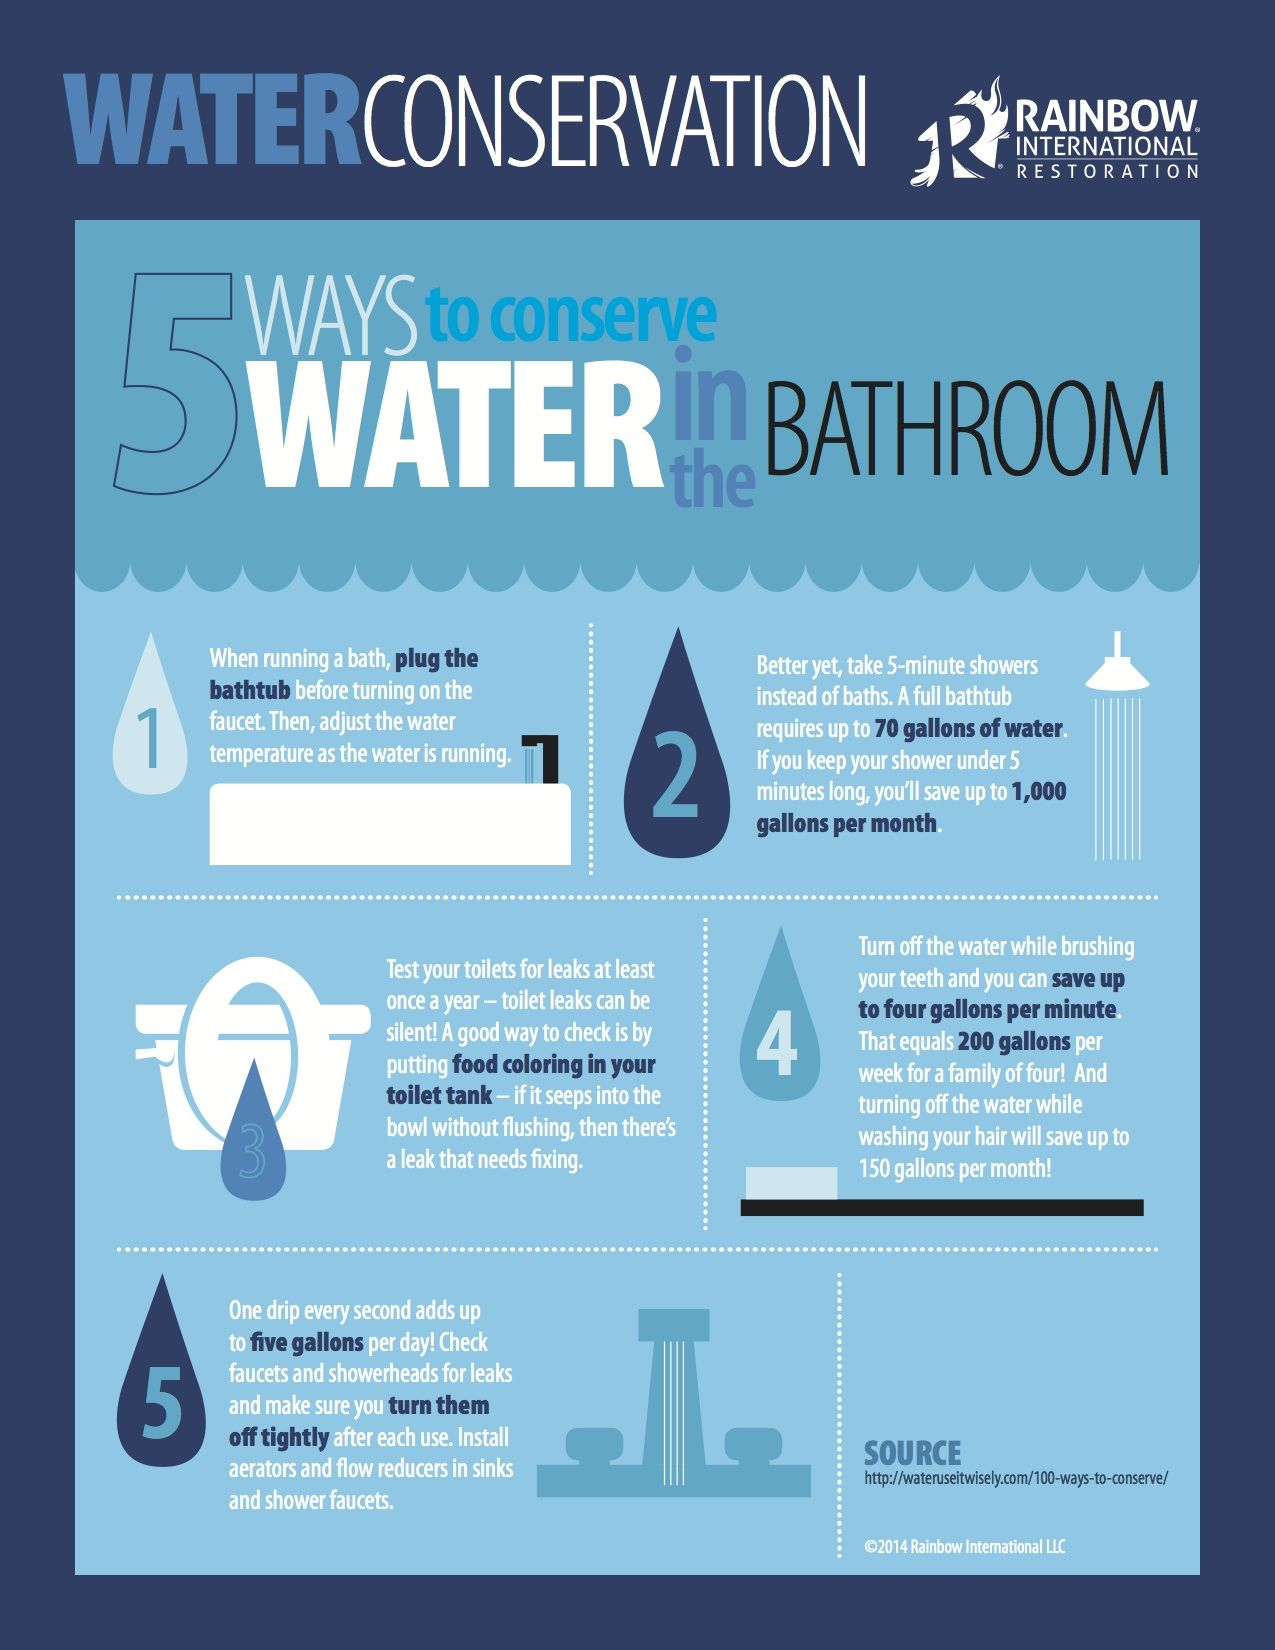 Please Visit Our Blog For More Tips On Conserving Water